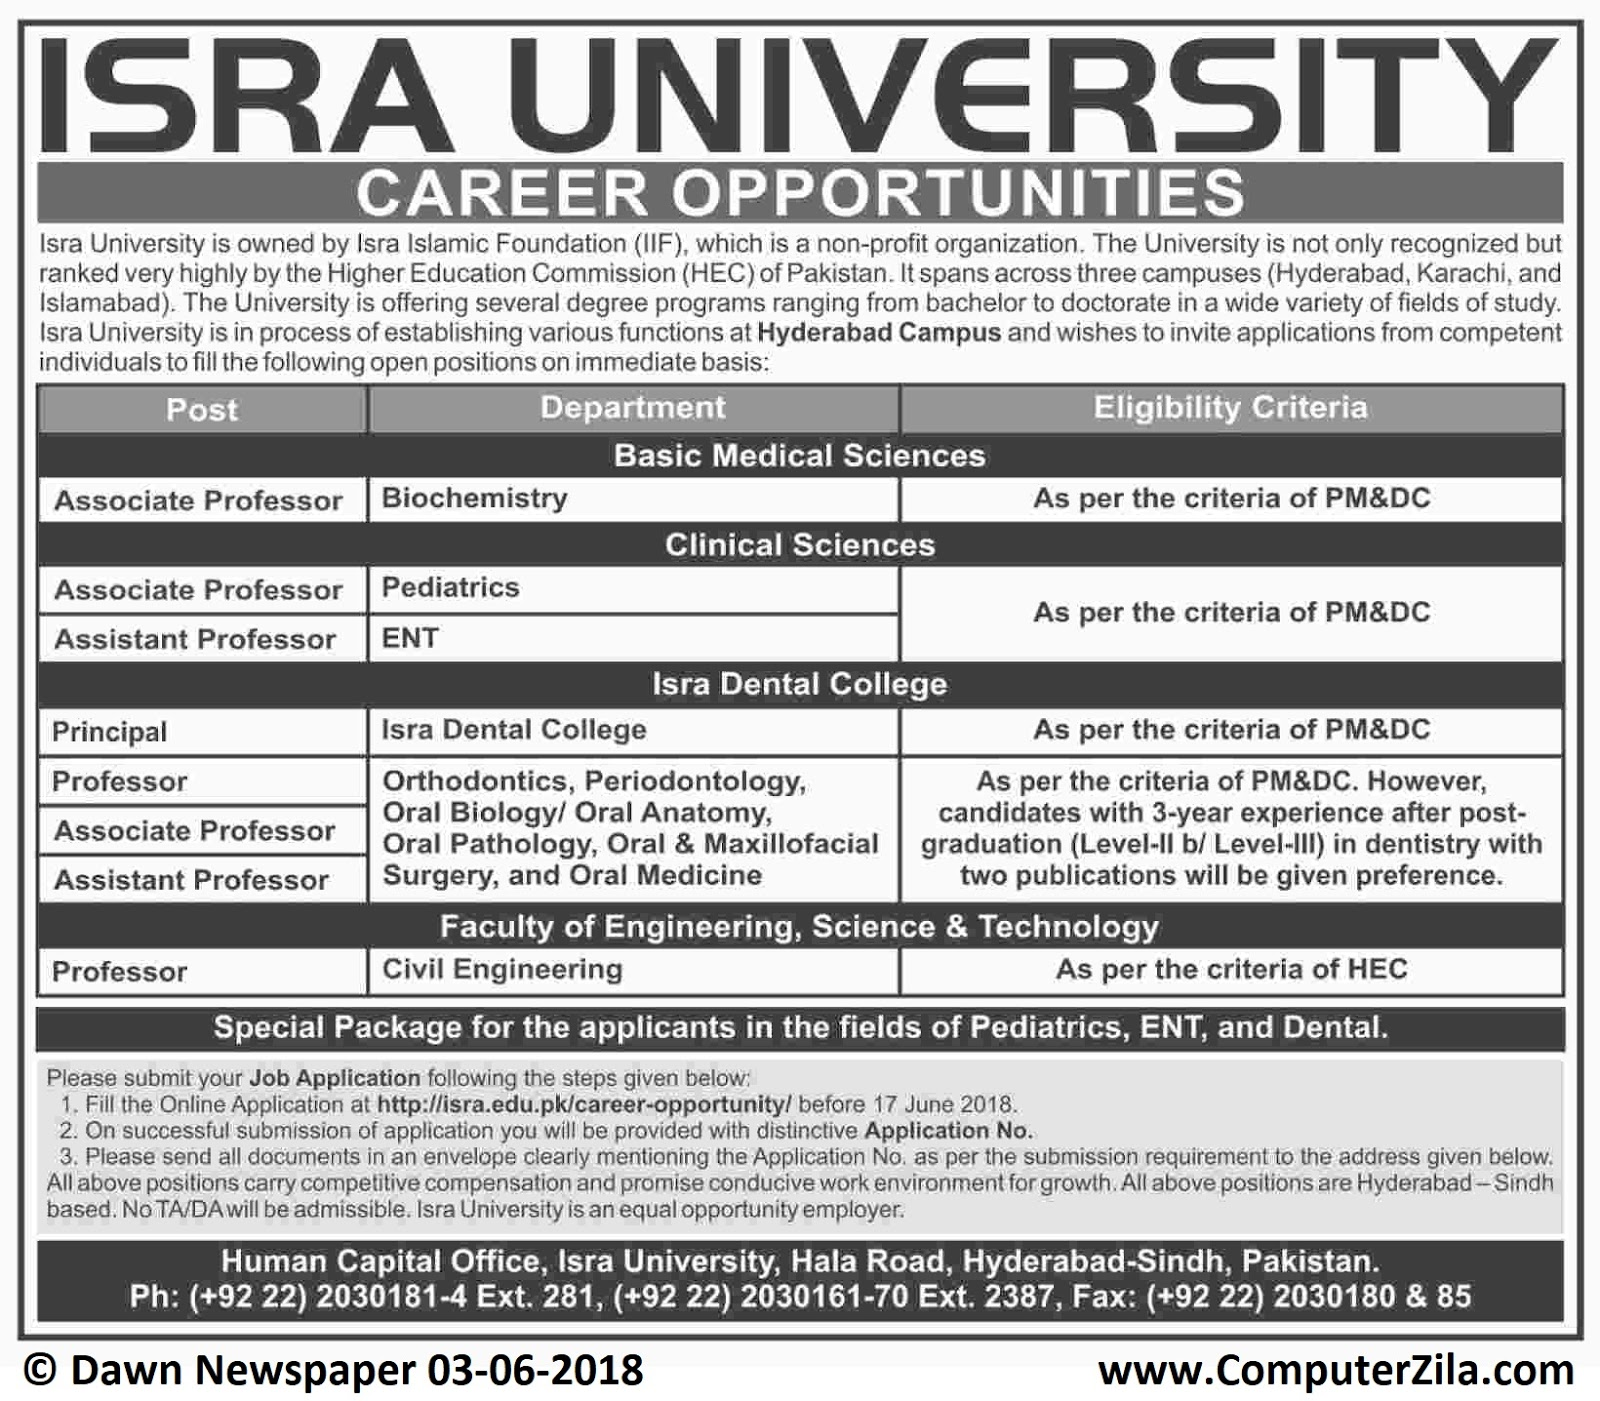 Career Opportunities at ISRA University